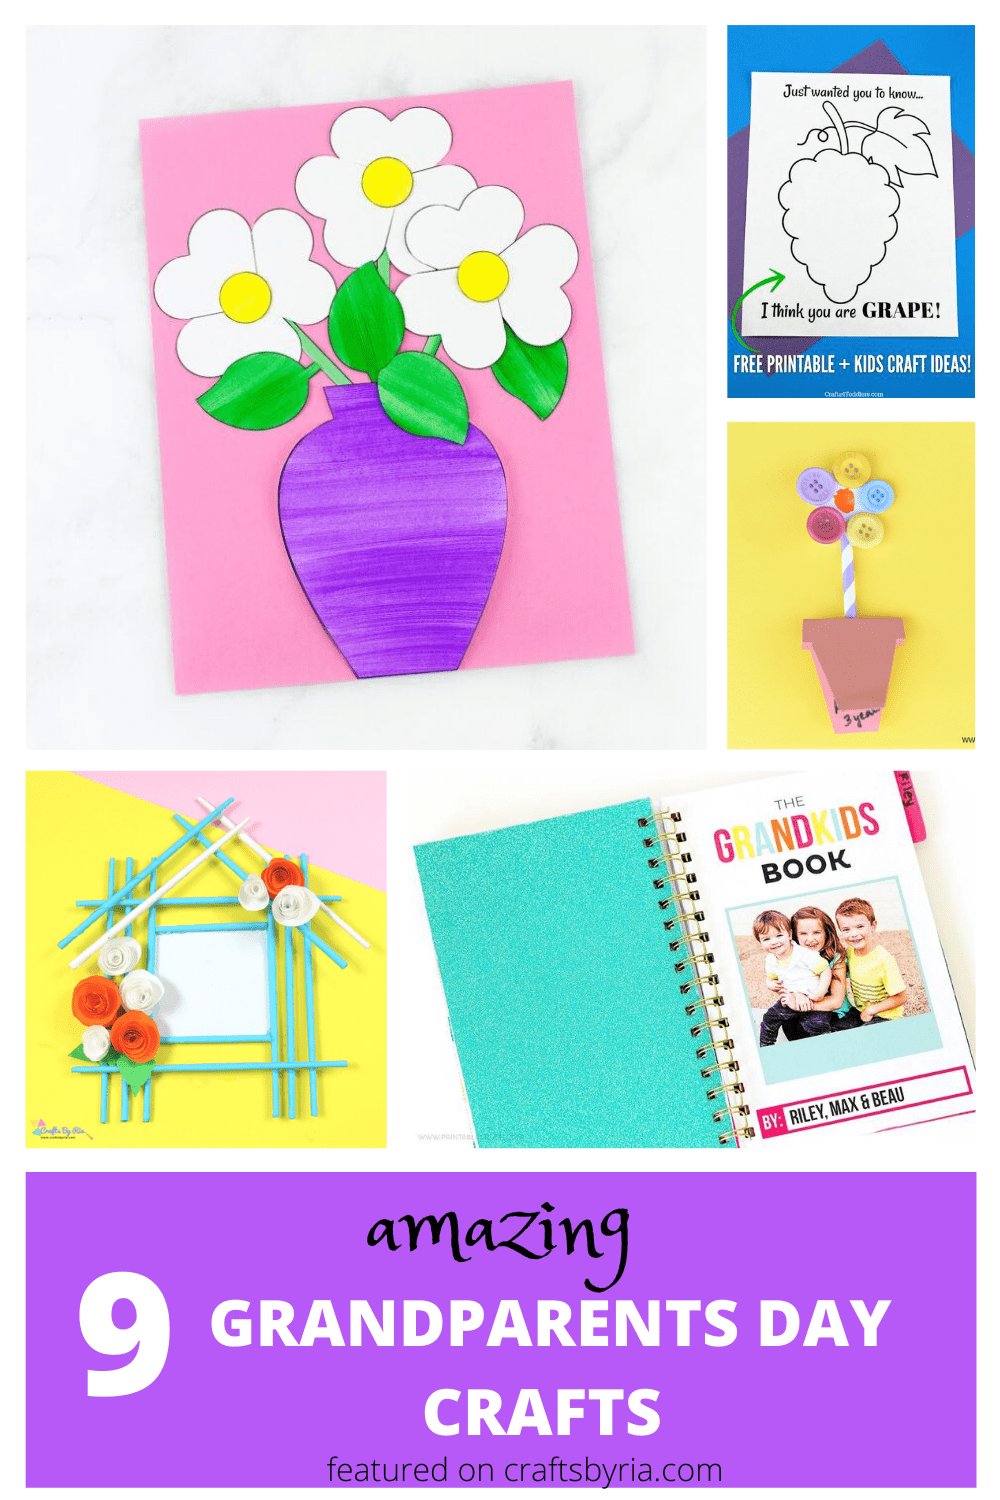 grandparents day craft ideas-pin1